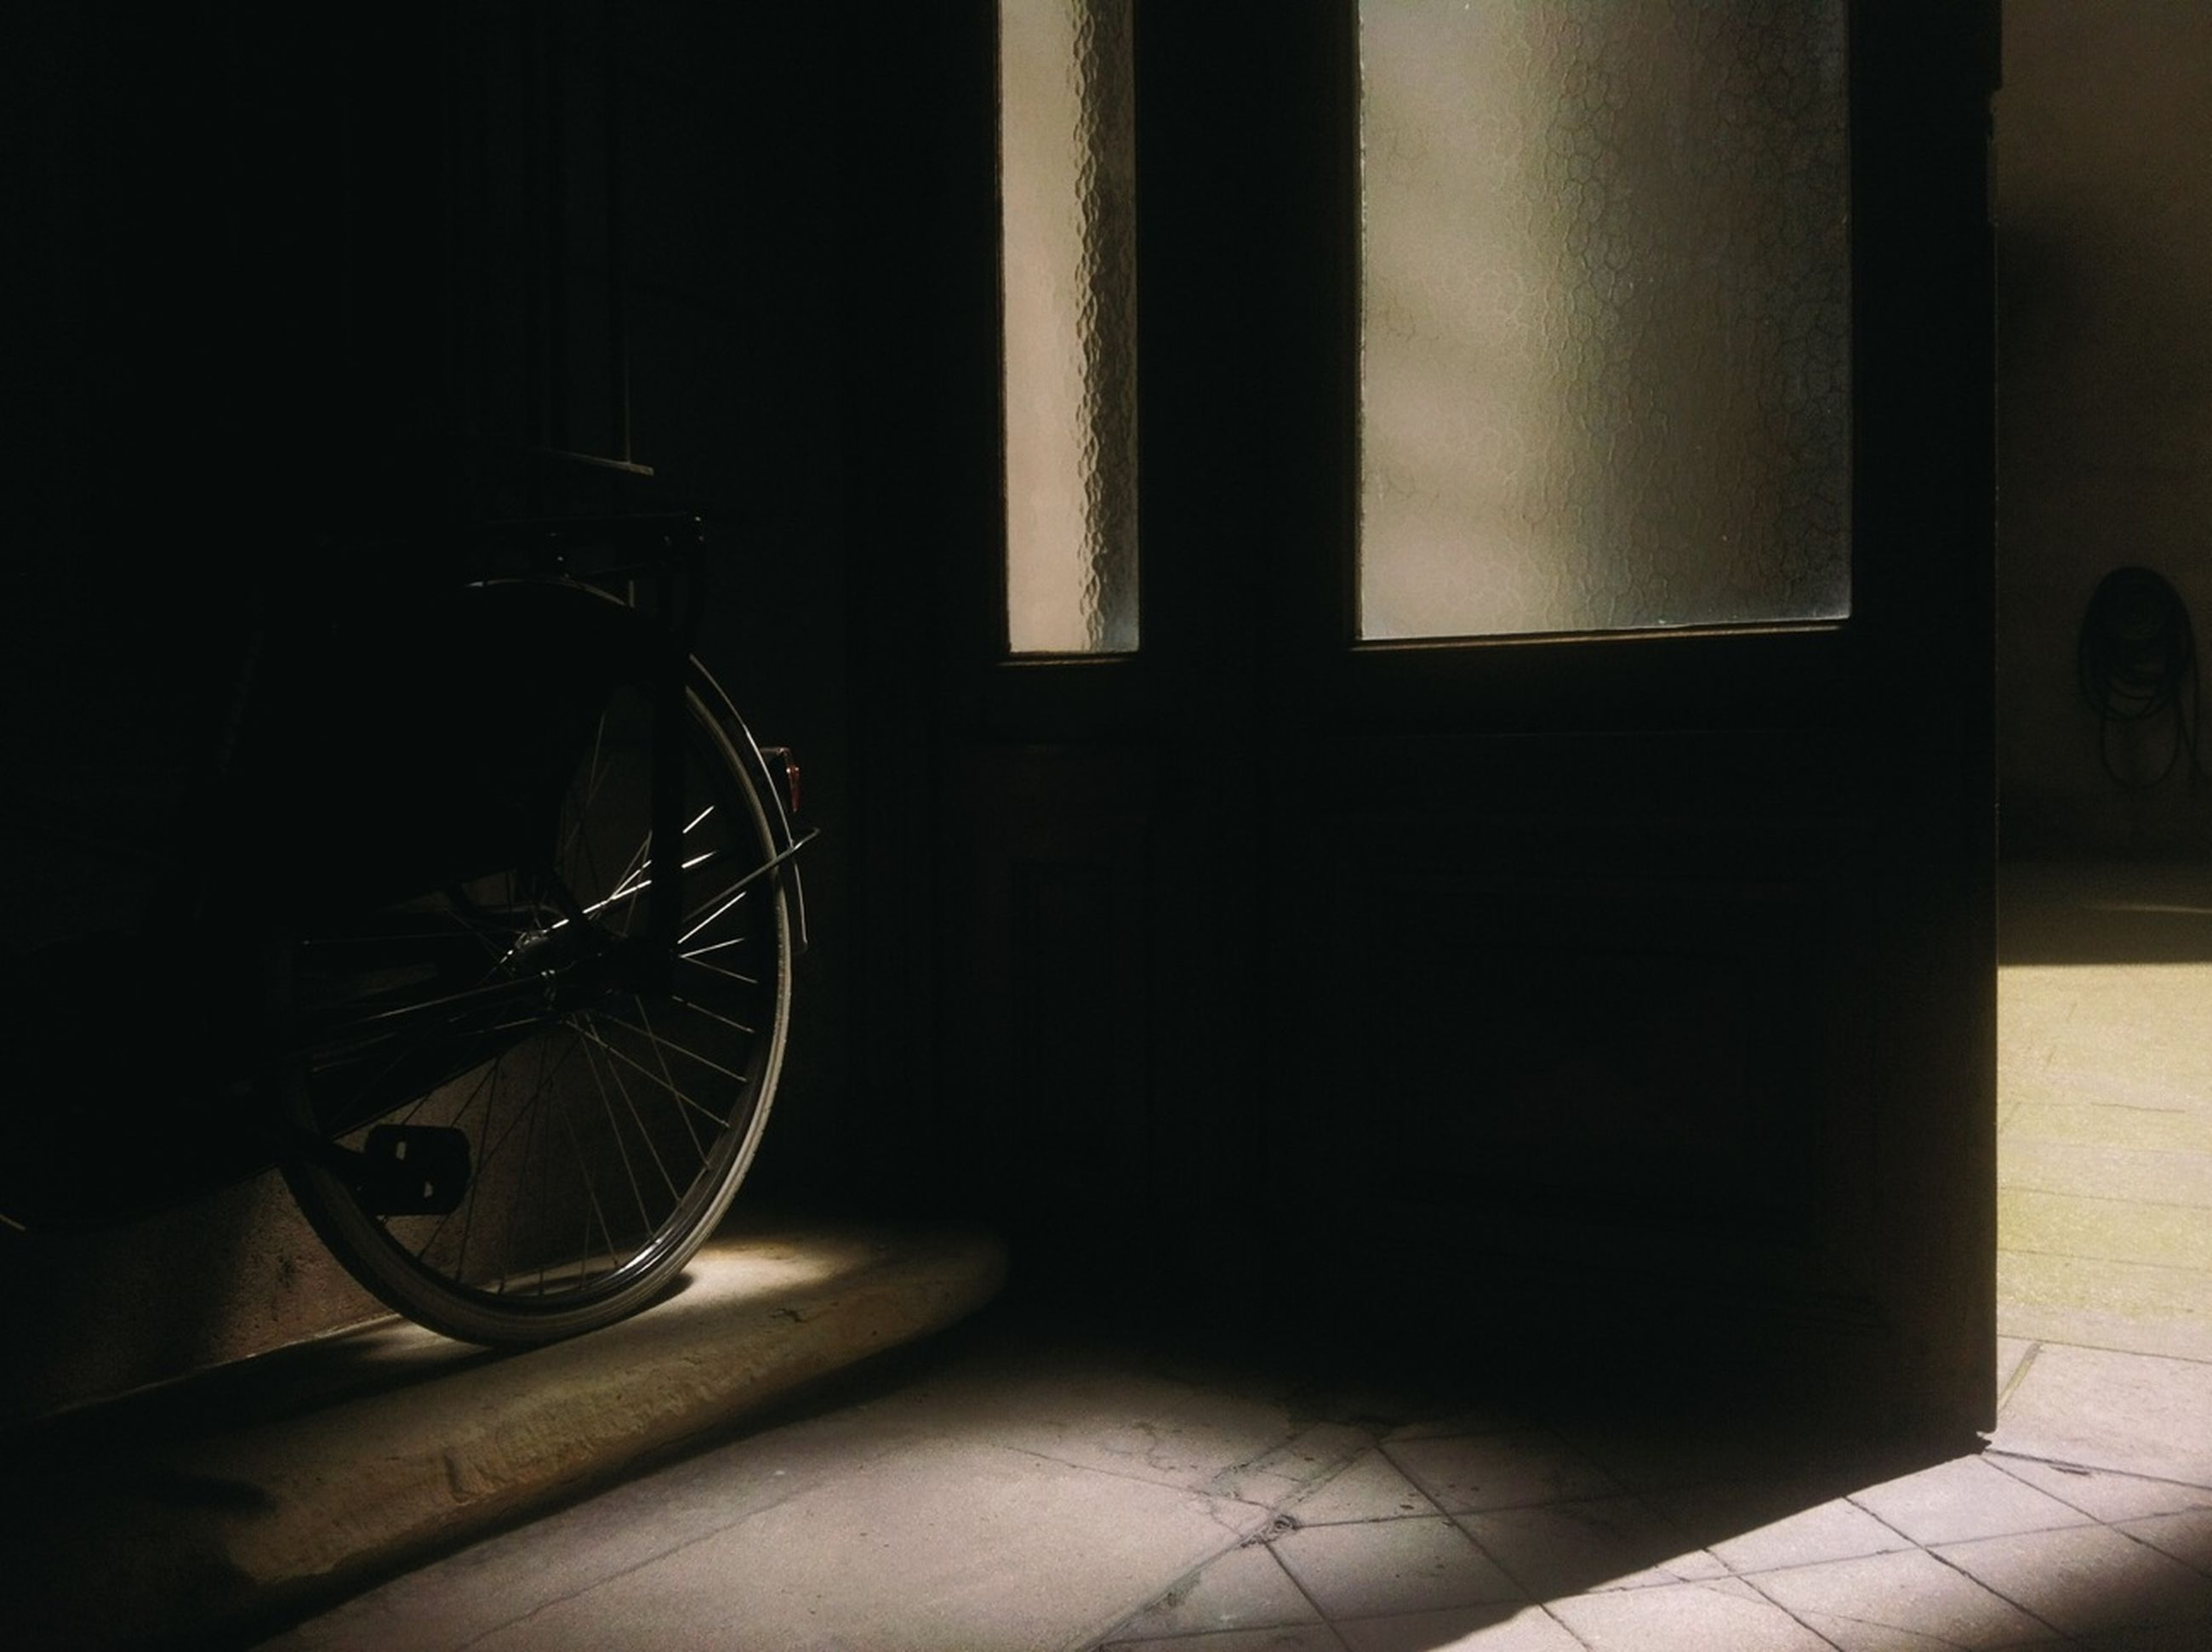 indoors, window, home interior, door, architecture, built structure, absence, no people, table, flooring, tiled floor, empty, sunlight, glass - material, chair, house, wall - building feature, day, bicycle, shadow